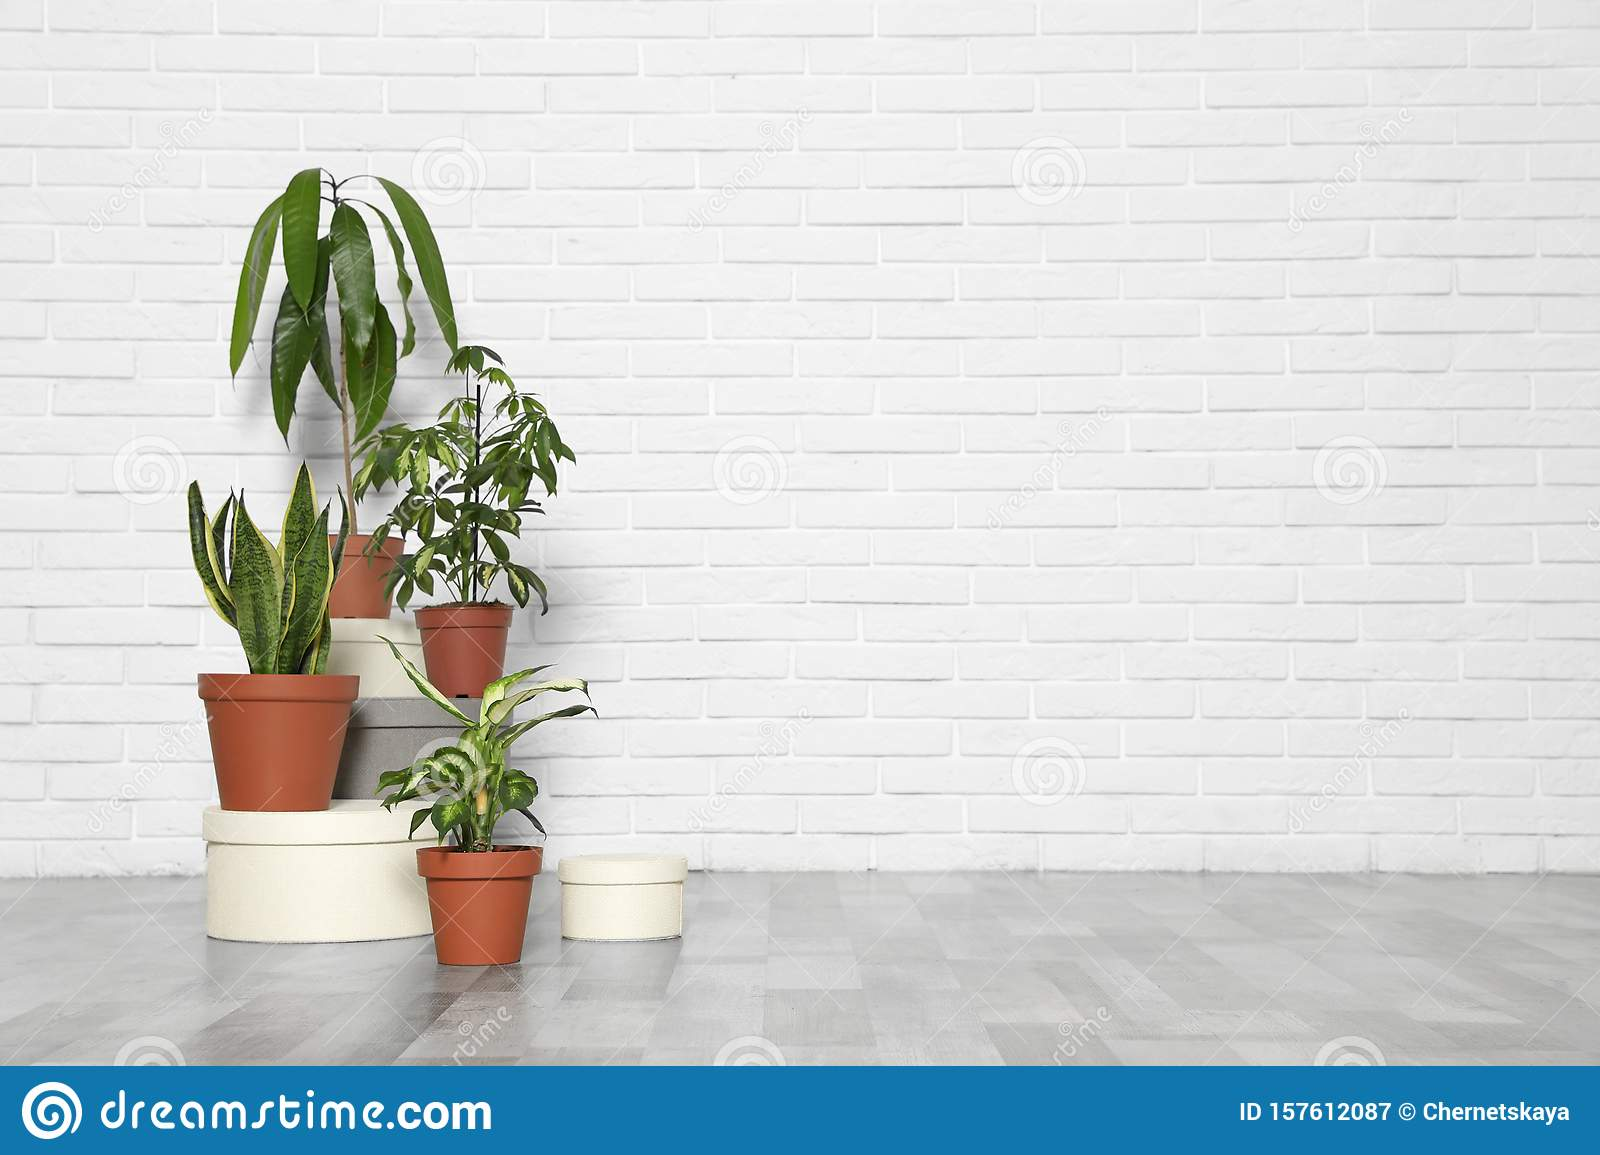 Different Indoor Plants At White Brick Wall Trendy Home Interior Decor Stock Image Image Of Fashion Decorative 157612087